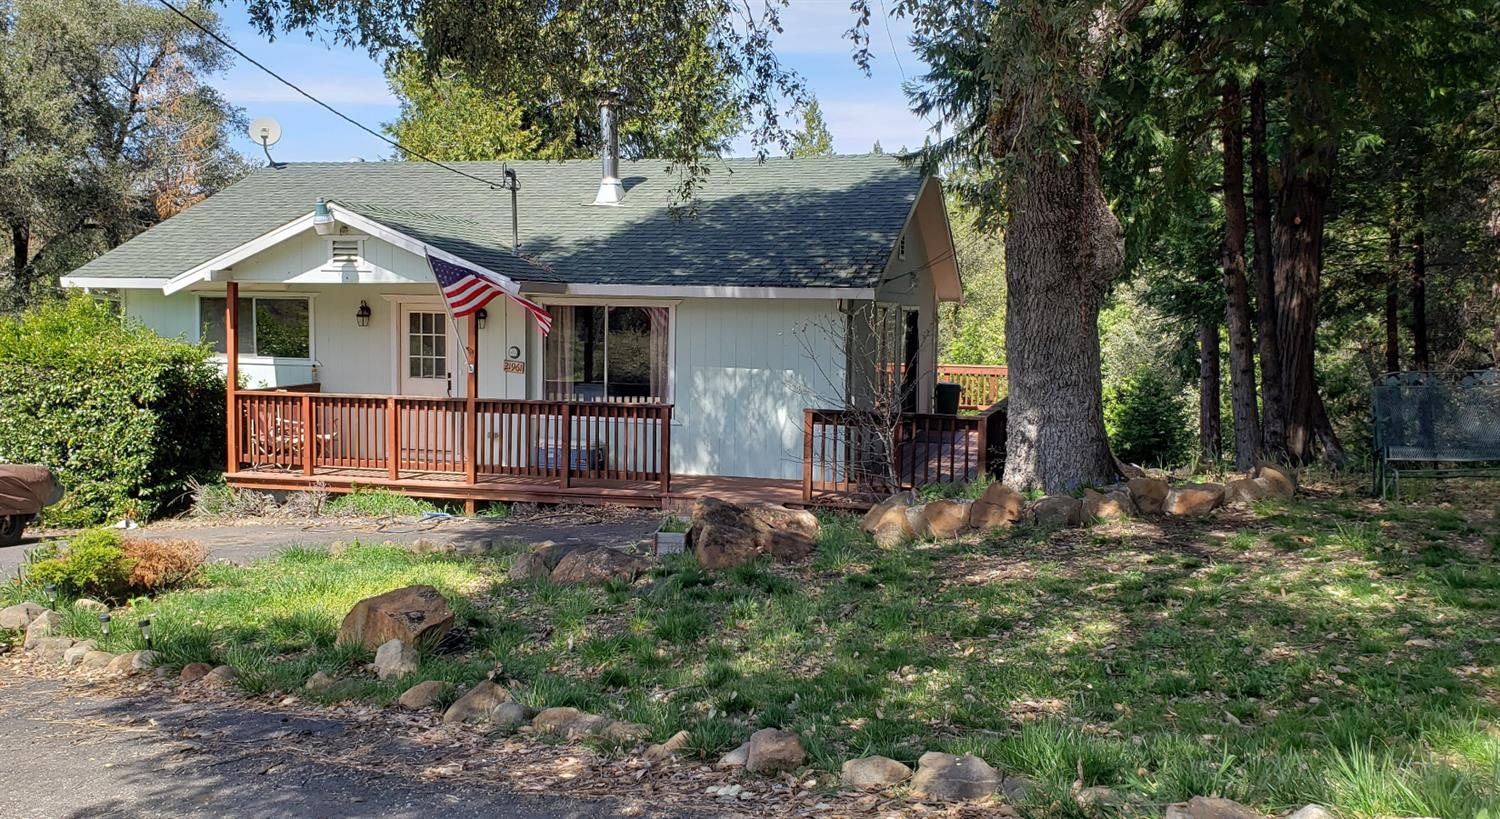 Life in the foothills among the trees! 2 levels with attached garage. Upstairs remodeled a few years ago.Upstairs is opened living area, kitchen, 2 bedrooms and full bath. Downstairs has family room, 2 bonus rooms (used as br's with no closets) Laundry area and interior access to garage. 2 water sources, well and natural spring maintained and shared with several neighboring properties.Sale includes 3 apn numbers 0021111012 0.29,021111006 0.636, 012-111-013 1.189 acres. total 2.1, Great get away with lots of sleeping area or cozy for a family.